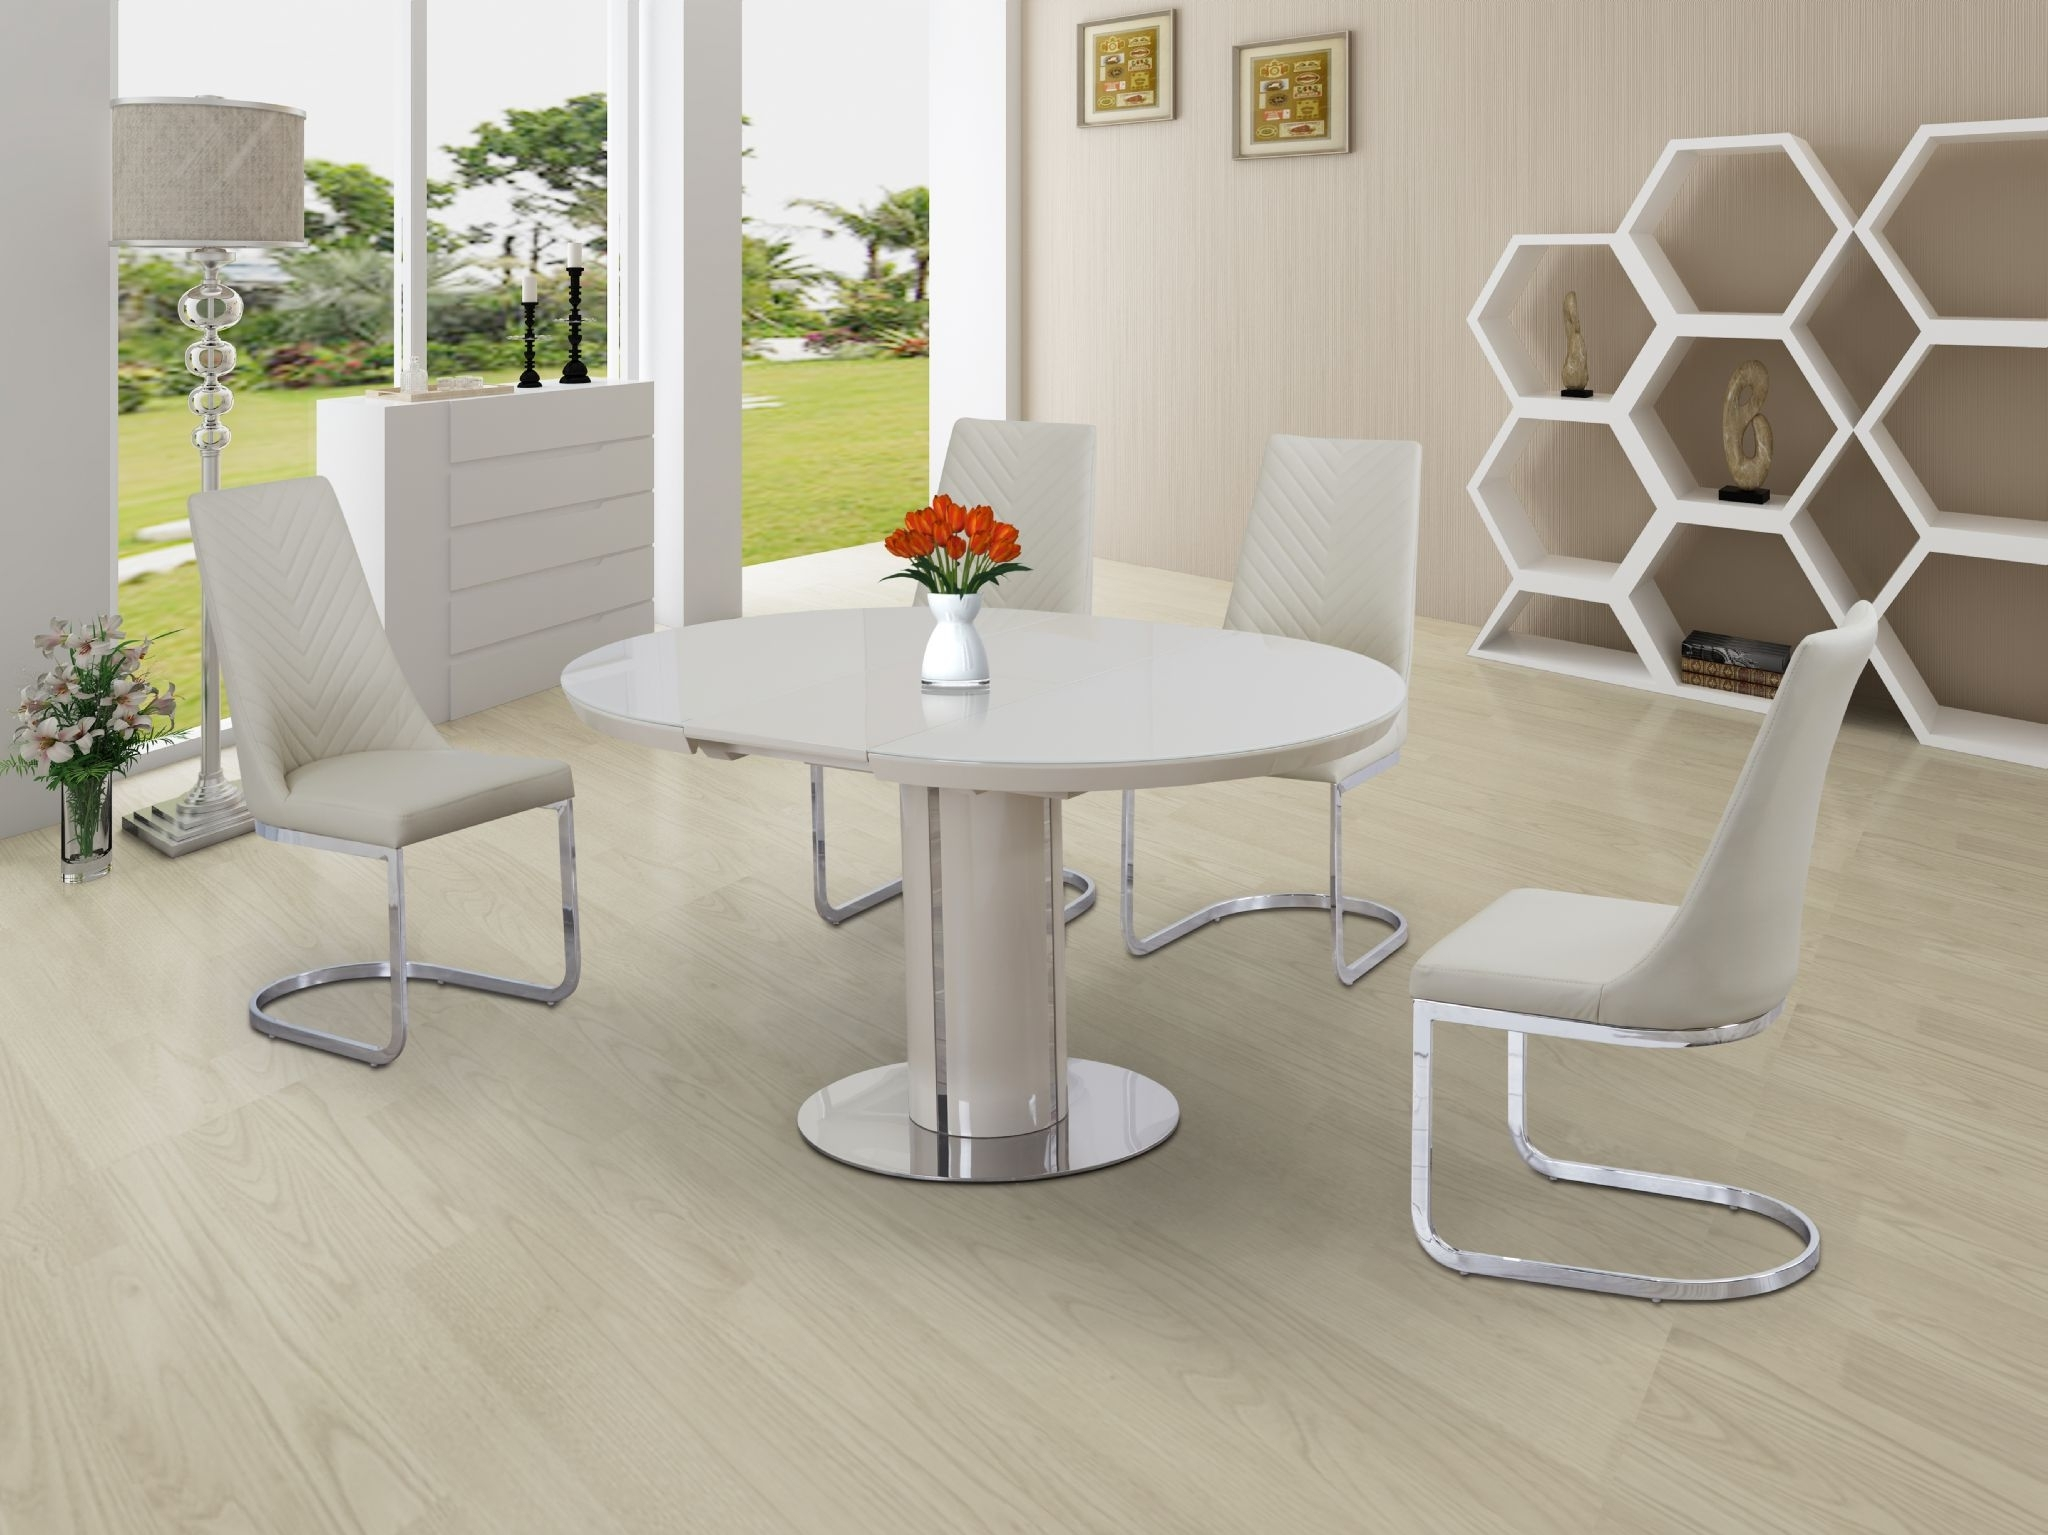 Most Recent White Oval Extending Dining Tables Inside Eclipse Round Oval Gloss & Glass Extending 110 To 145 Cm Dining (View 11 of 25)